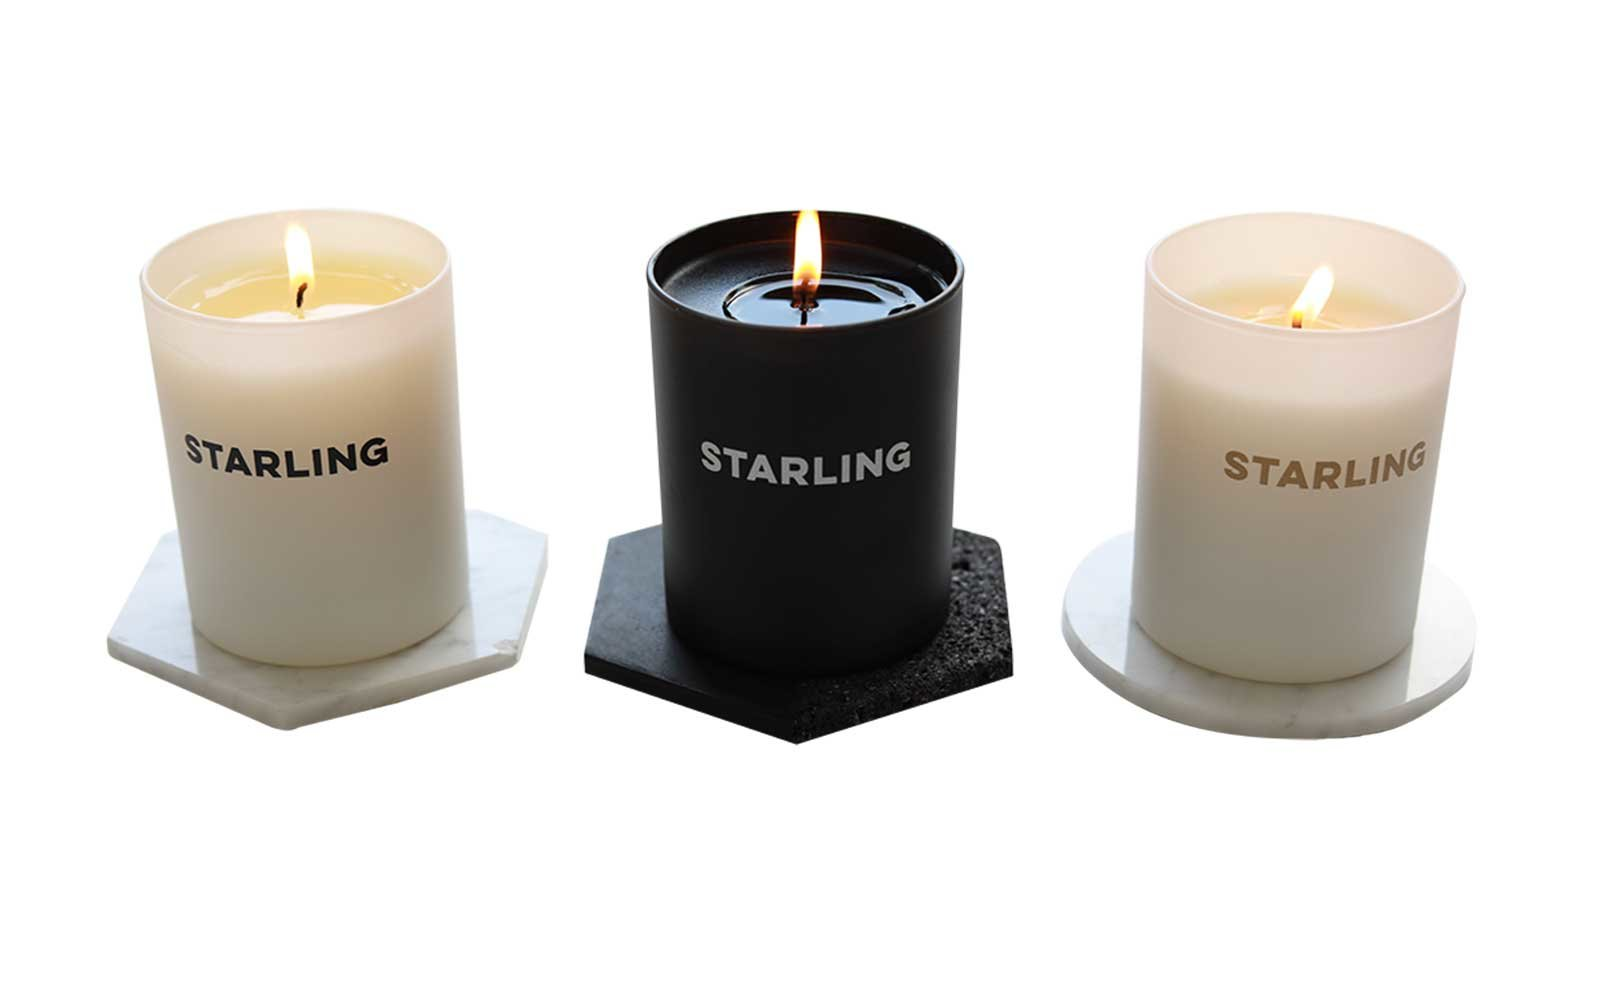 Starling candles